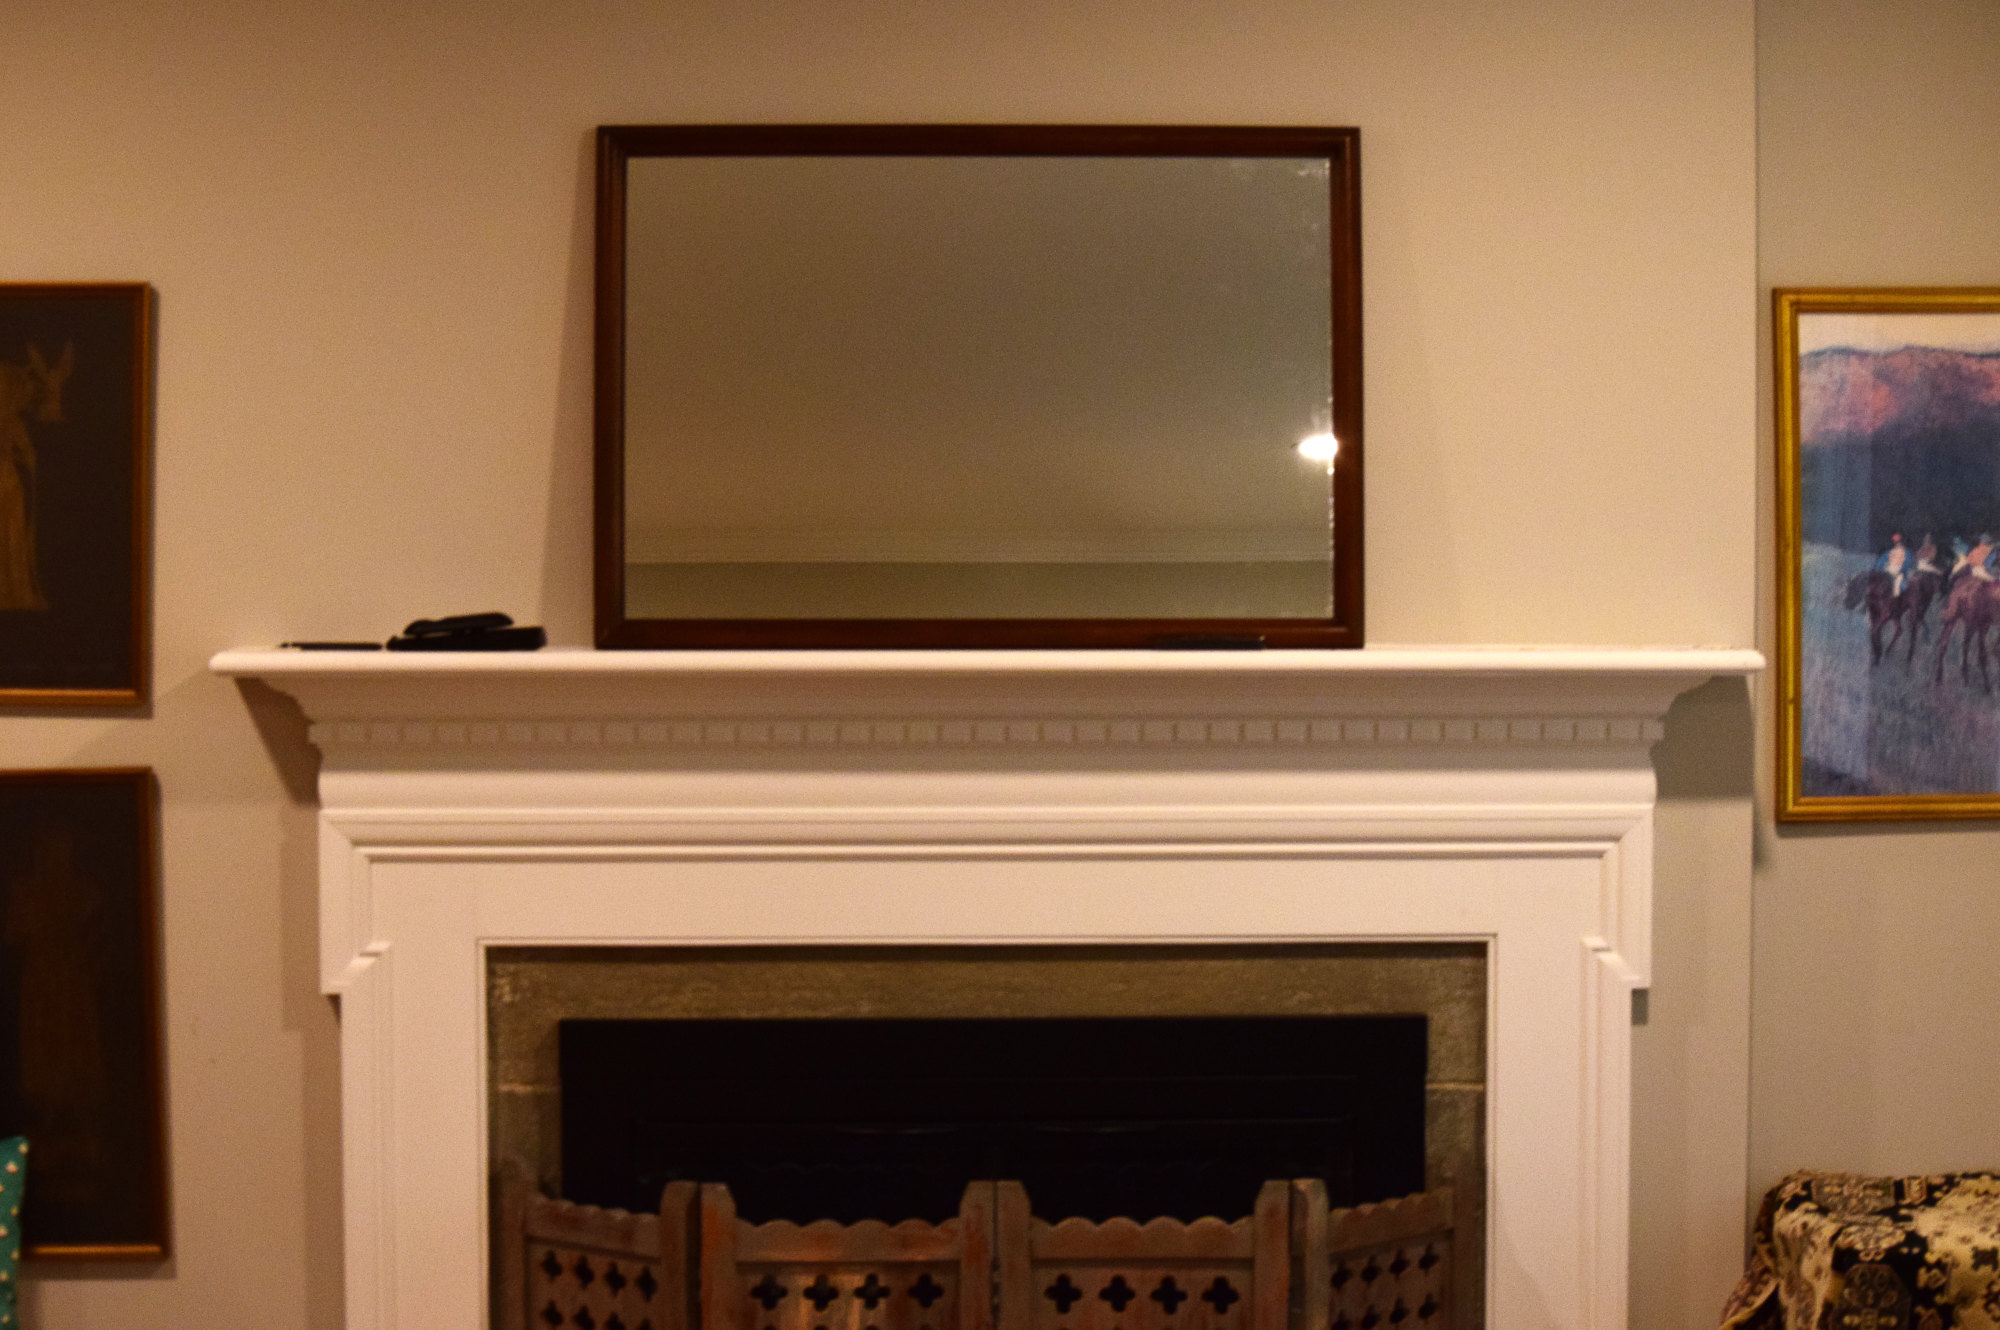 dark framed mirror on fireplace mantel with tv remotes